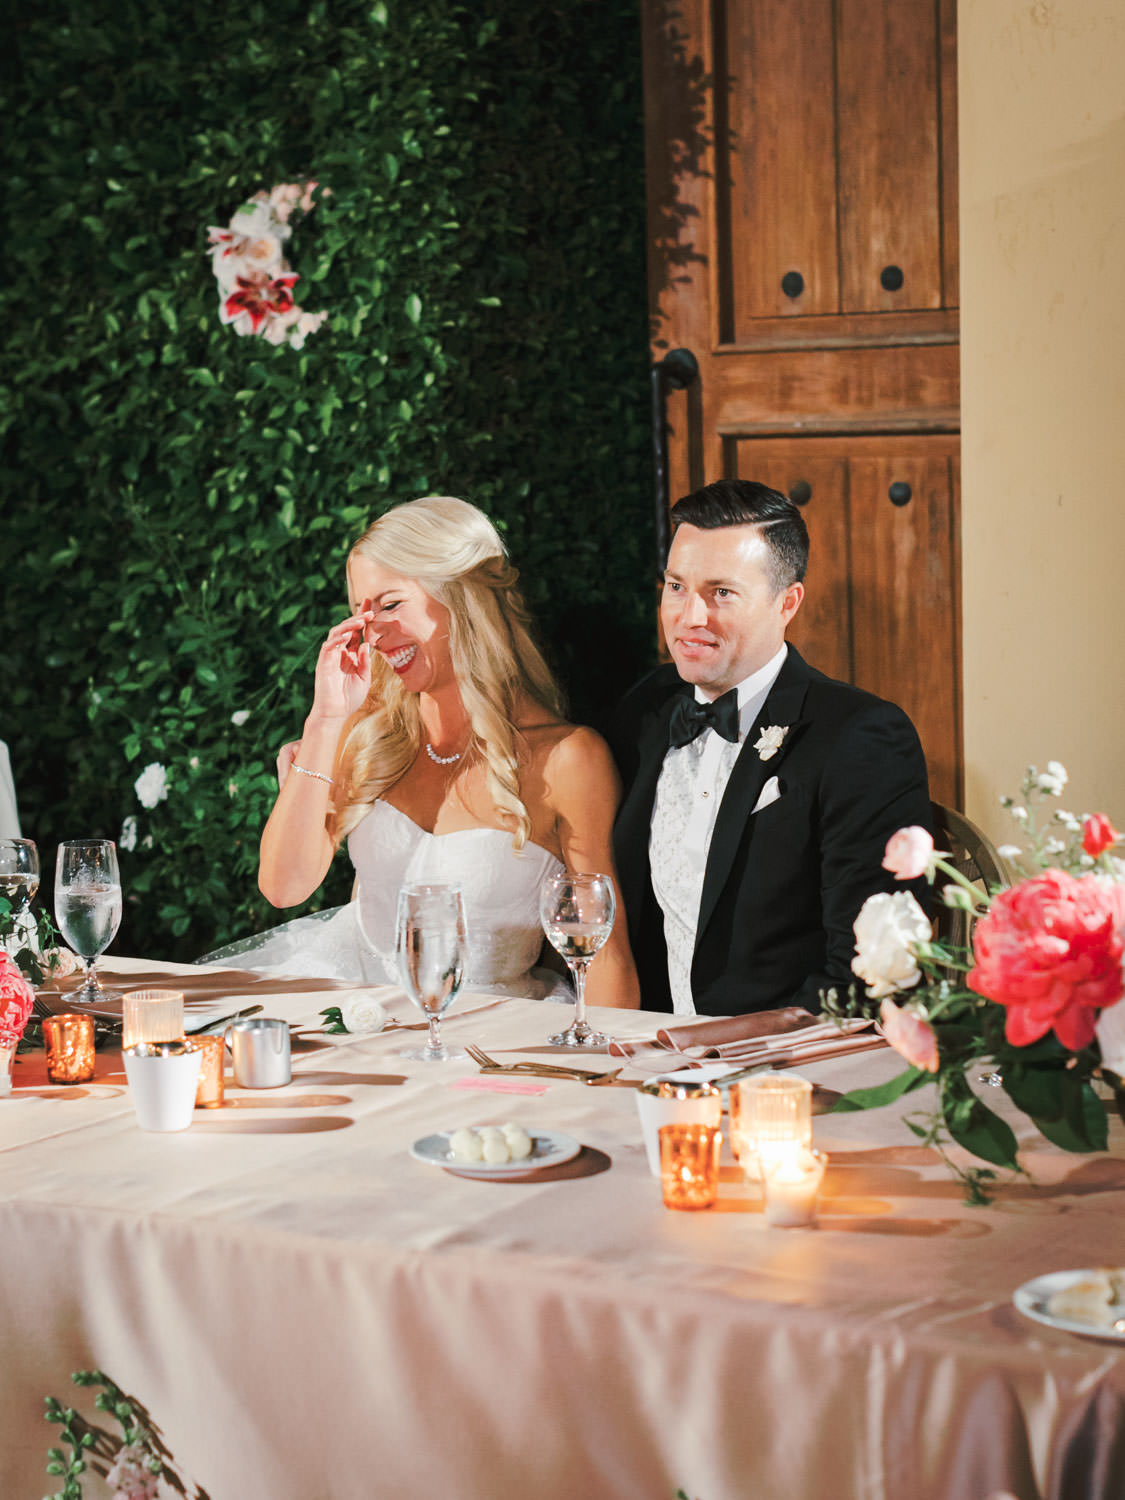 Bride and groom laughing at toast. Miramonte Resort wedding reception. Photography by Cavin Elizabeth.